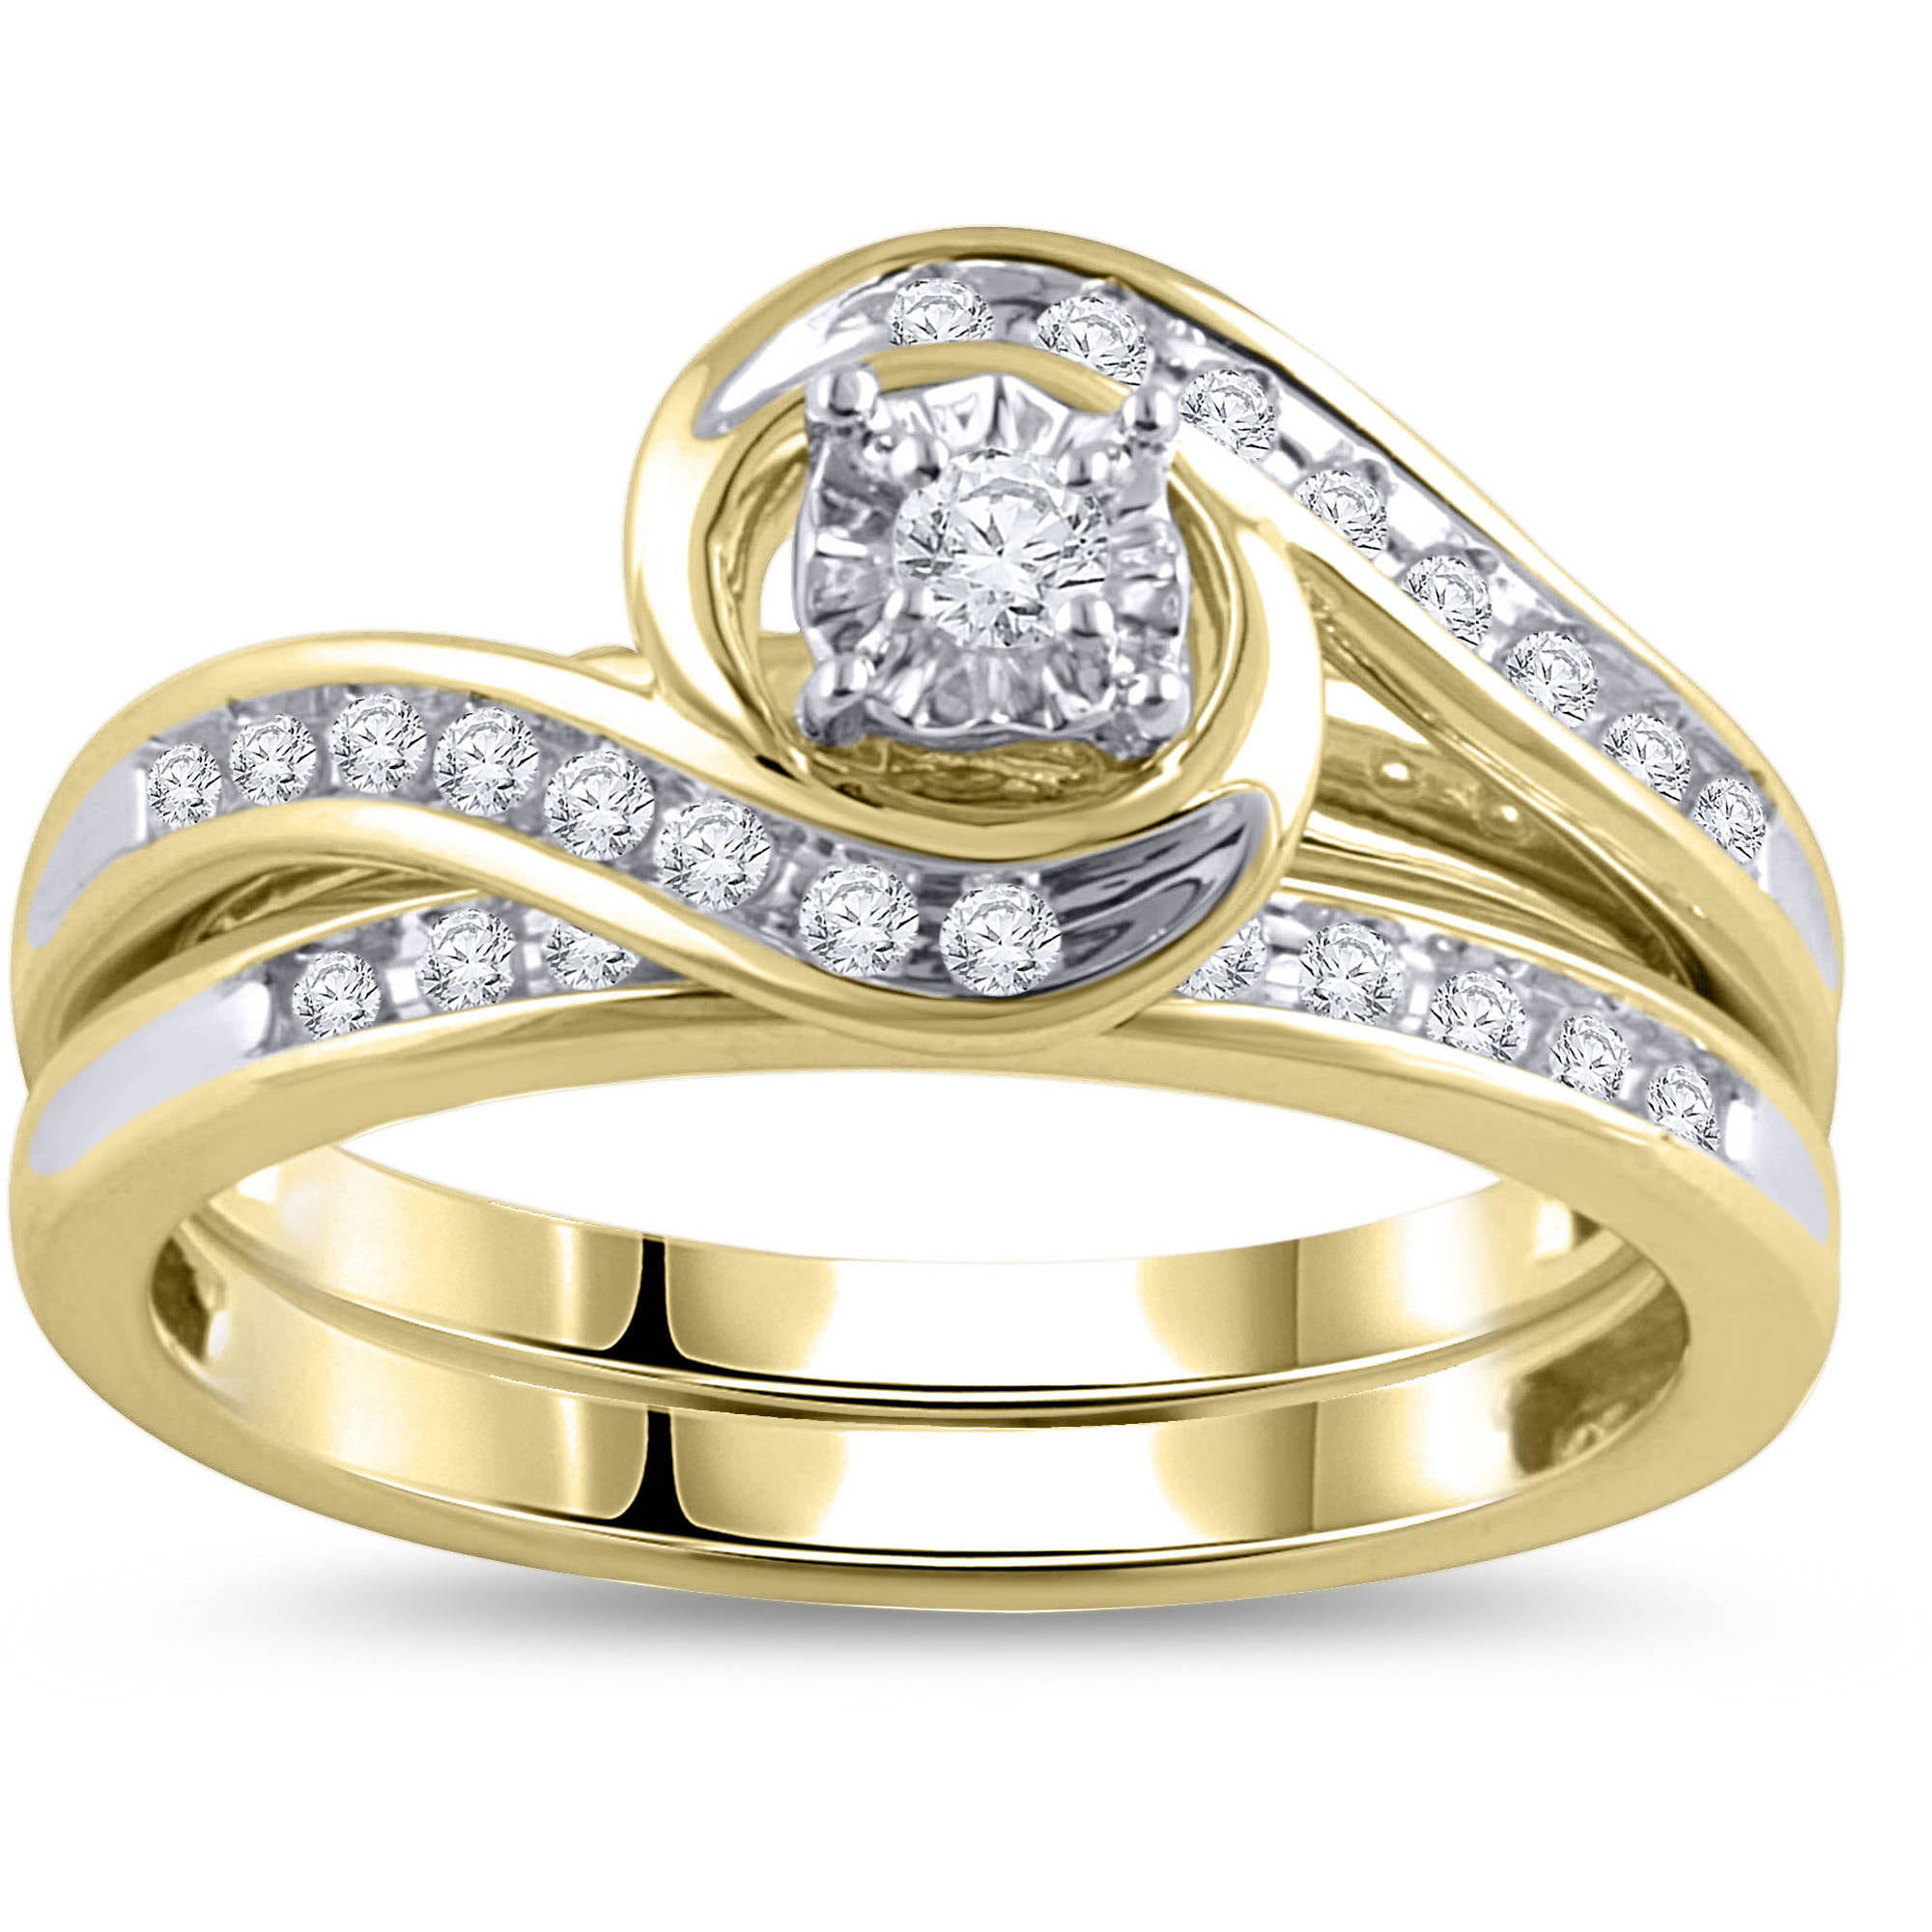 1/3 carat diamond yellow gold bypass bridal ring set - walmart